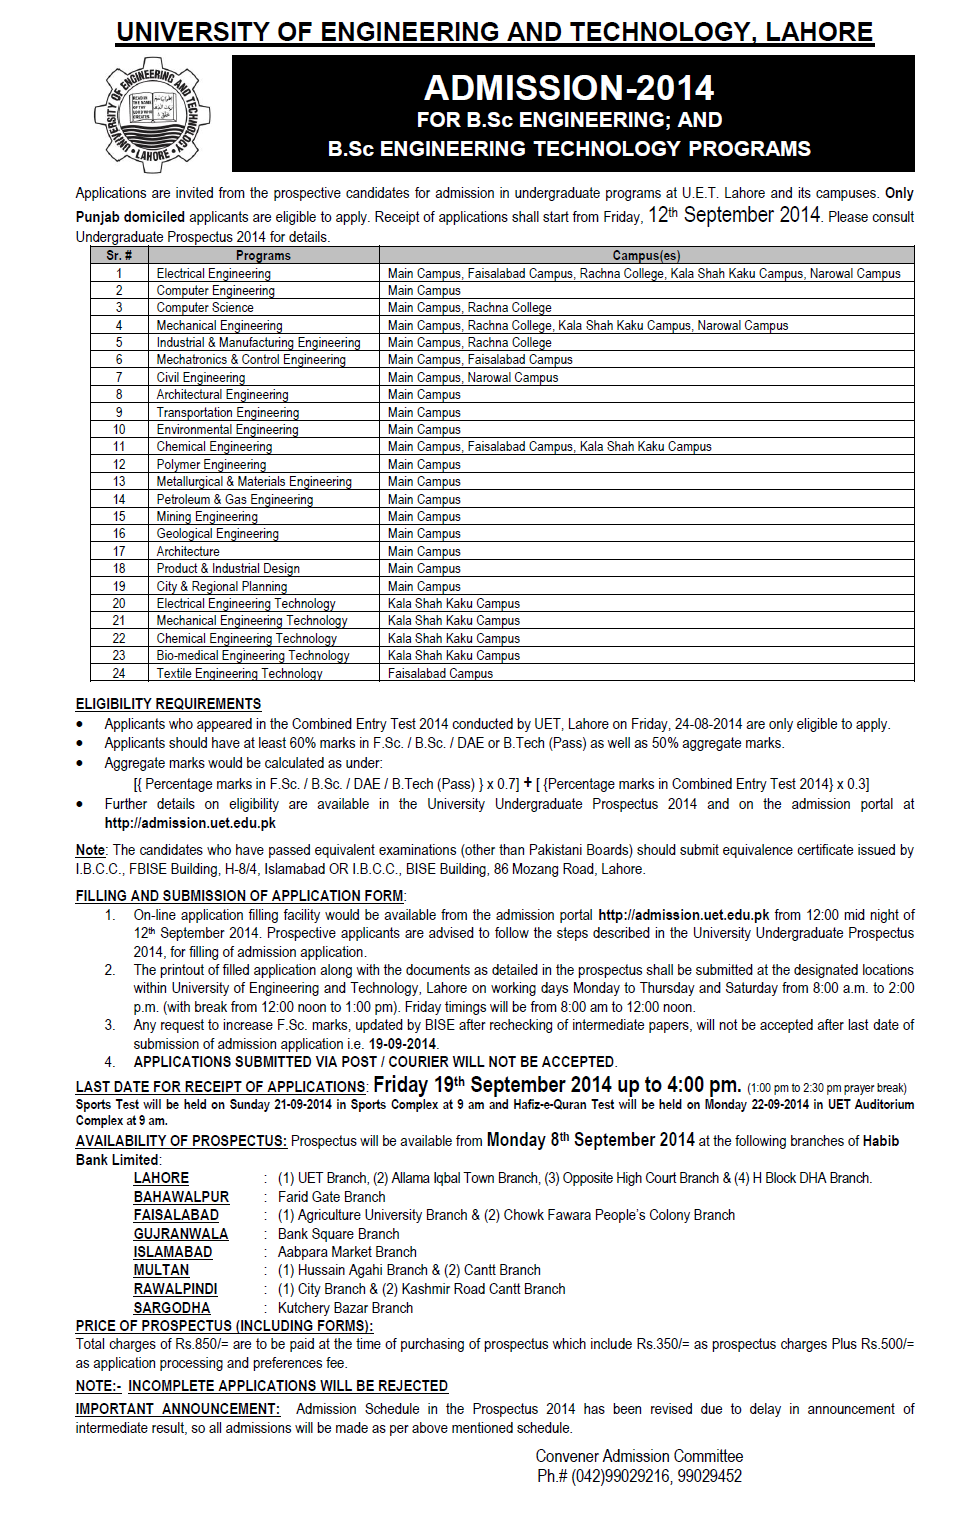 UET Lahore Bsc Engineering And Technology Admissions 2015 Form, Last Date